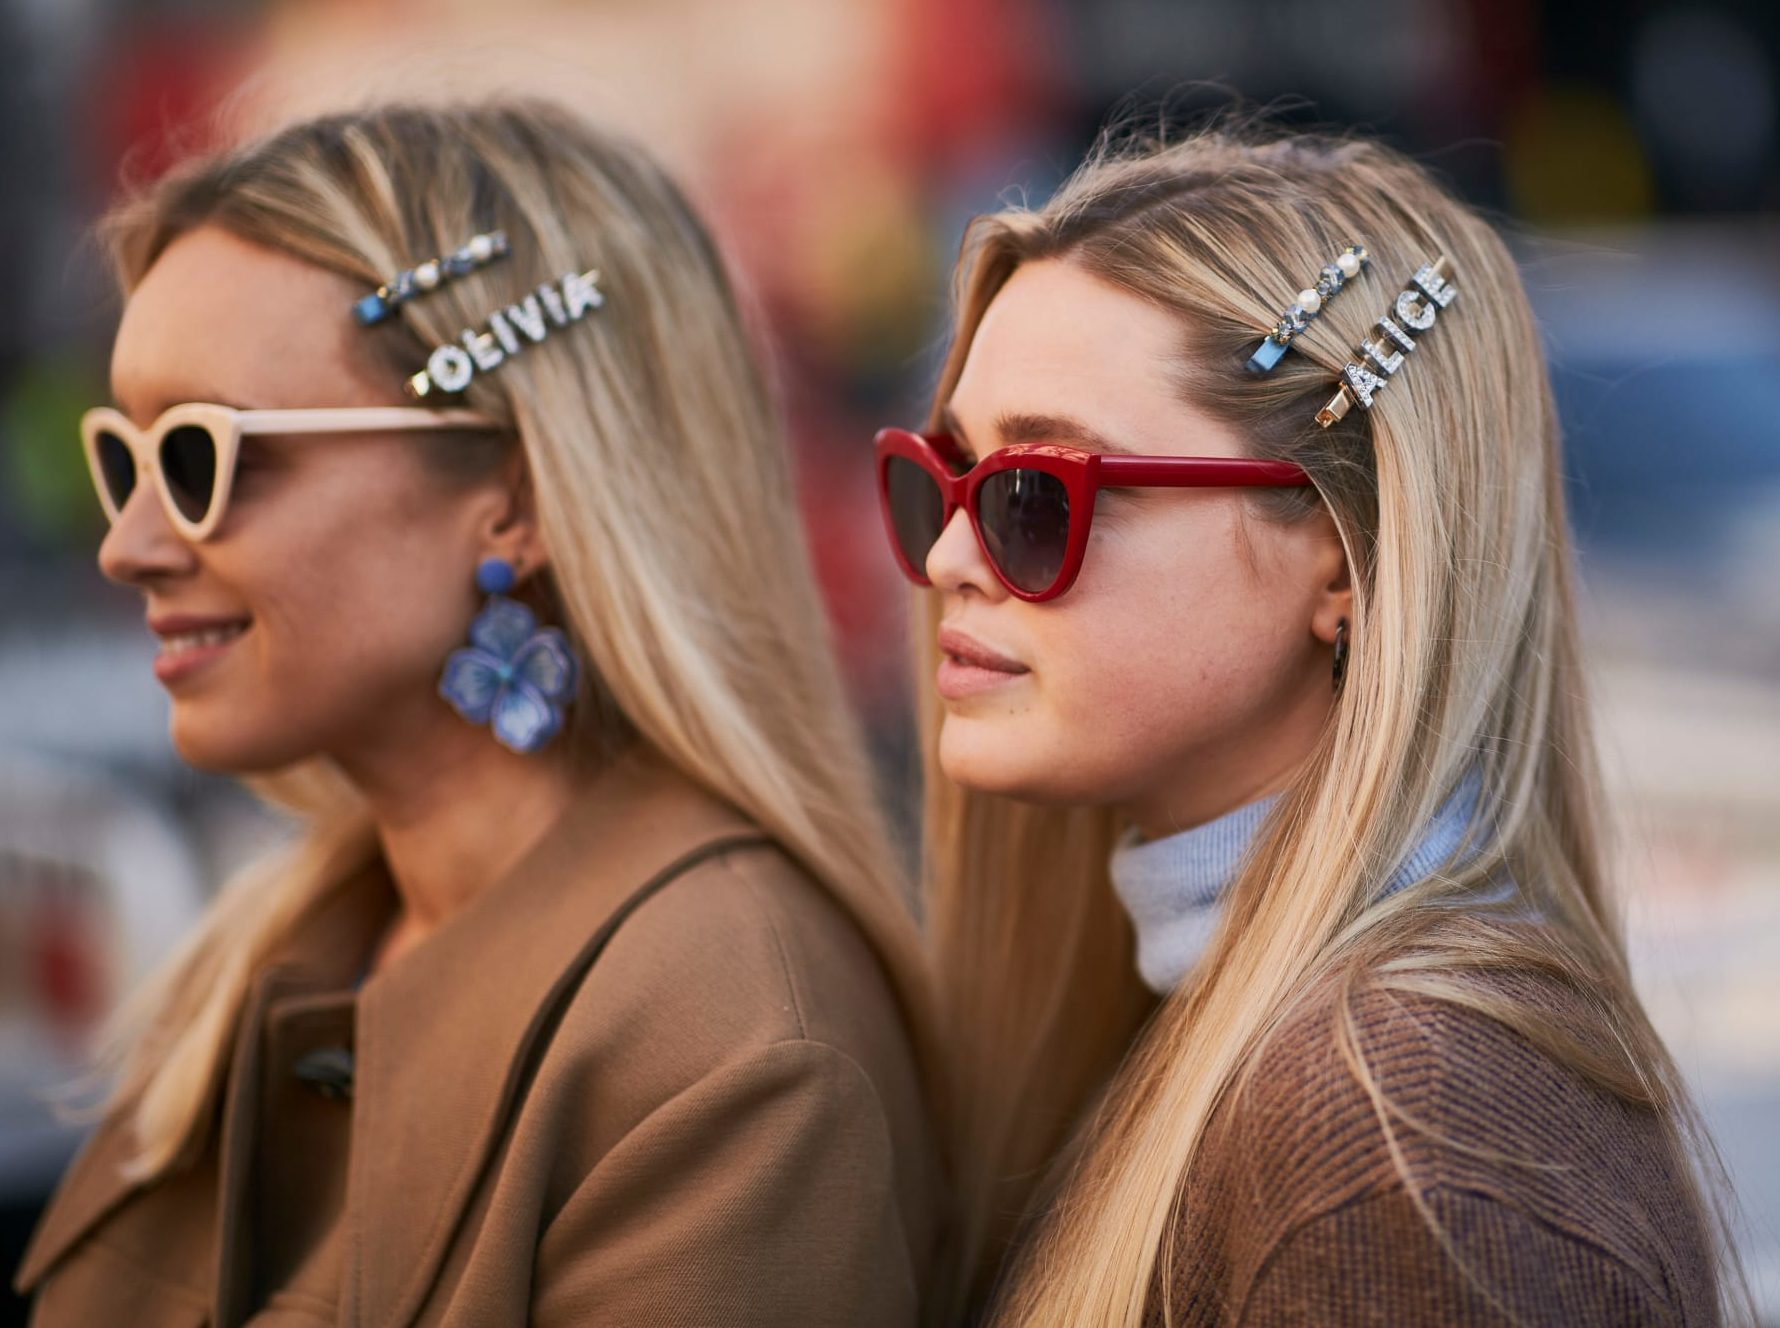 london-fashion-week-beauty-ss16-e1552476607888.jpg (1780×1328)